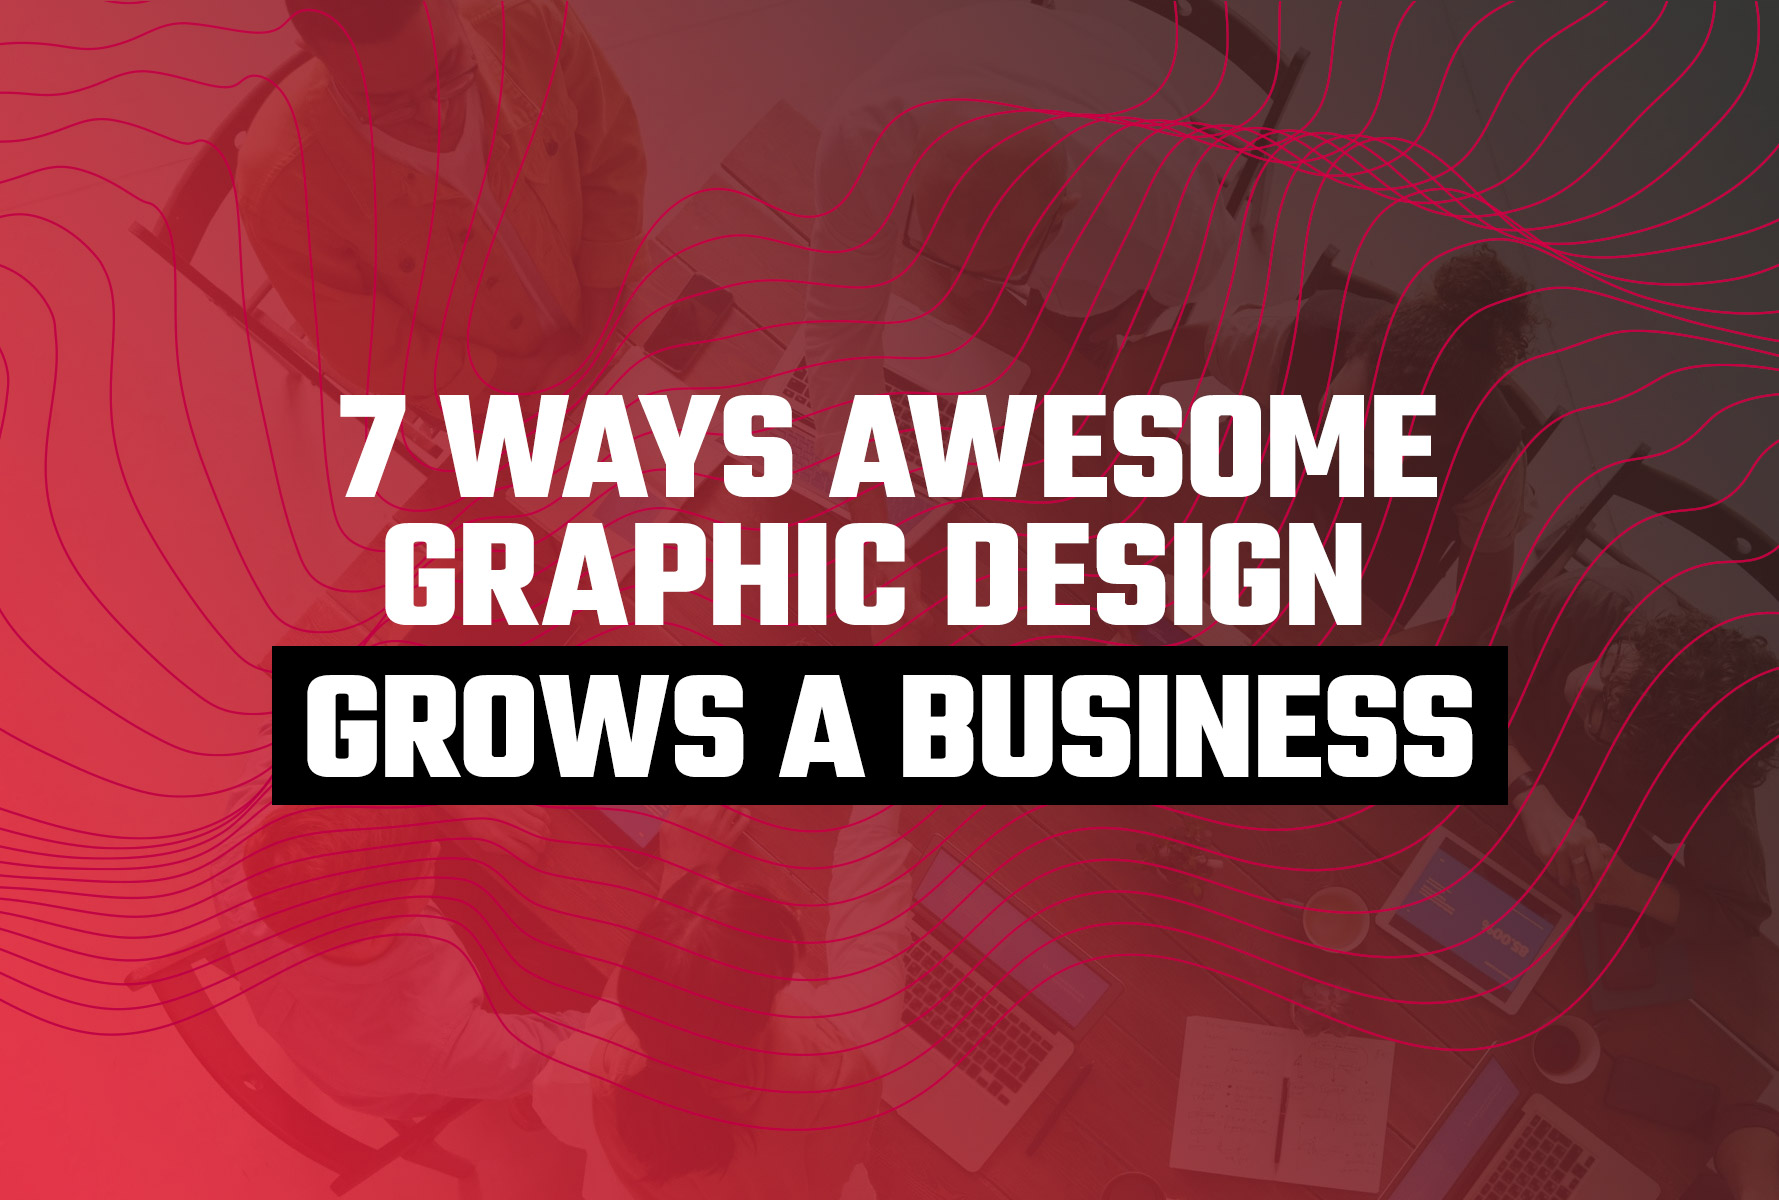 7 Ways Awesome Graphic Design Grows a Business